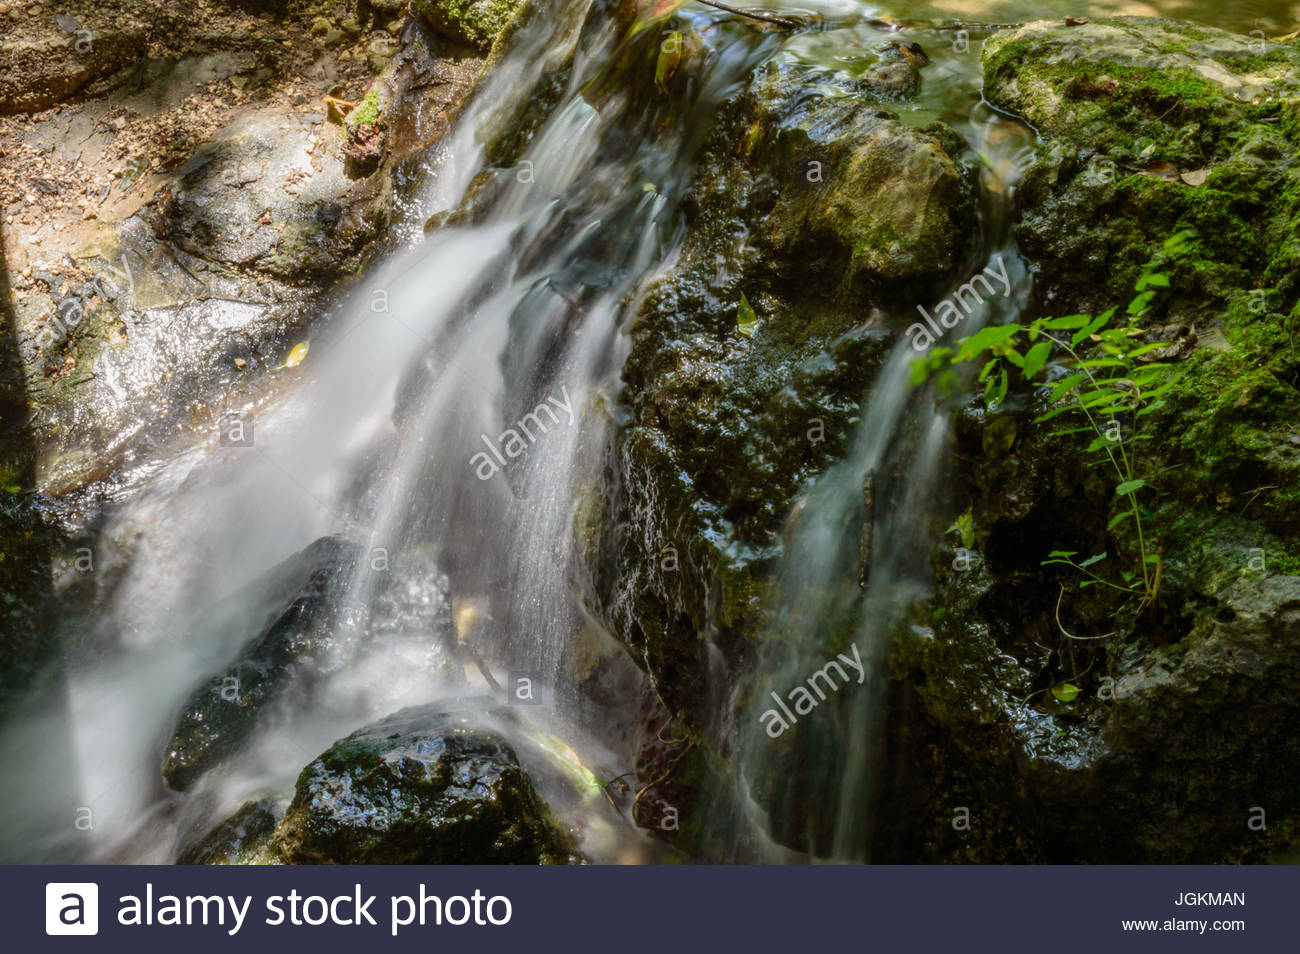 A relaxing look at the flowing spring fed water flowing over the rocks. - Stock Image